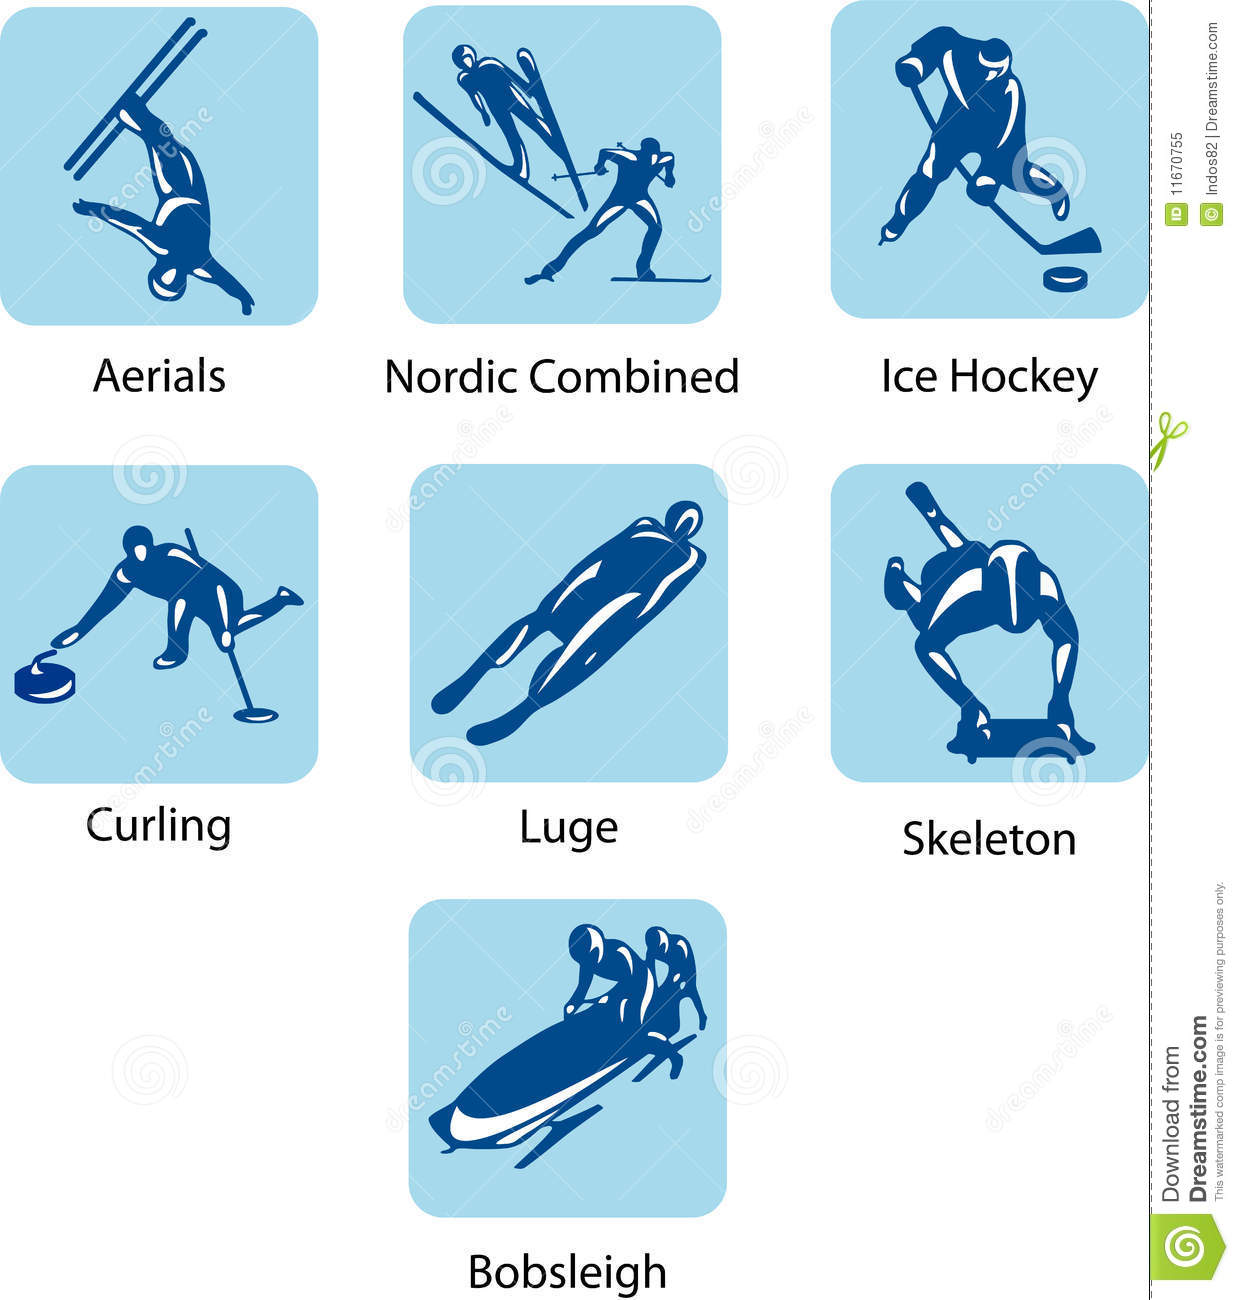 sport pictograms royalty free stock photo image 11670755